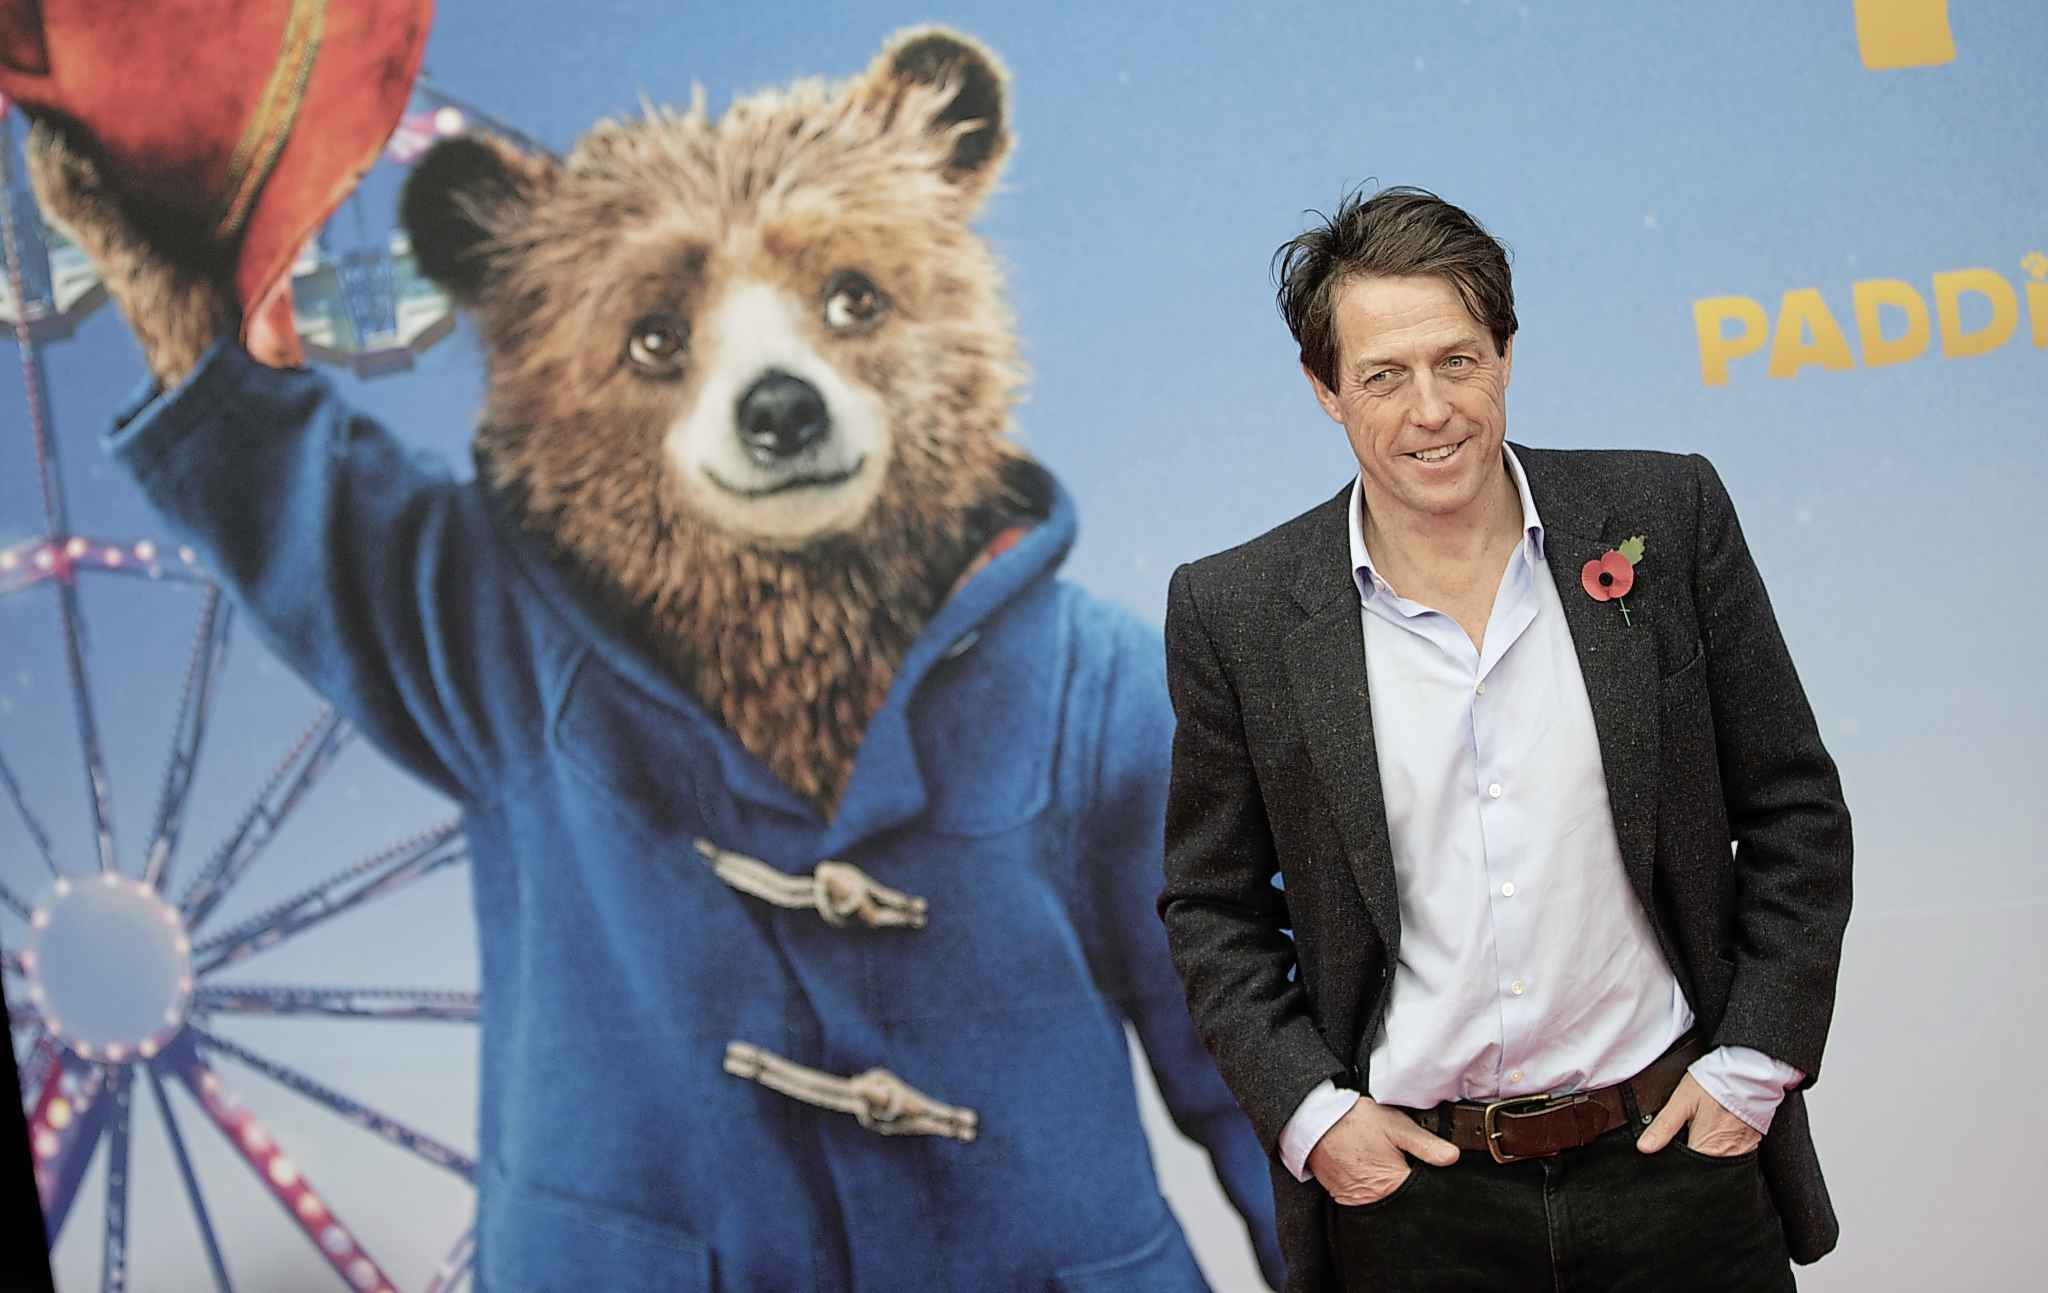 Paddington 2 ends with a big Hugh Grant musical production number. My goodness, what's not to like? (Joerg Carstensen/dpa via AP)